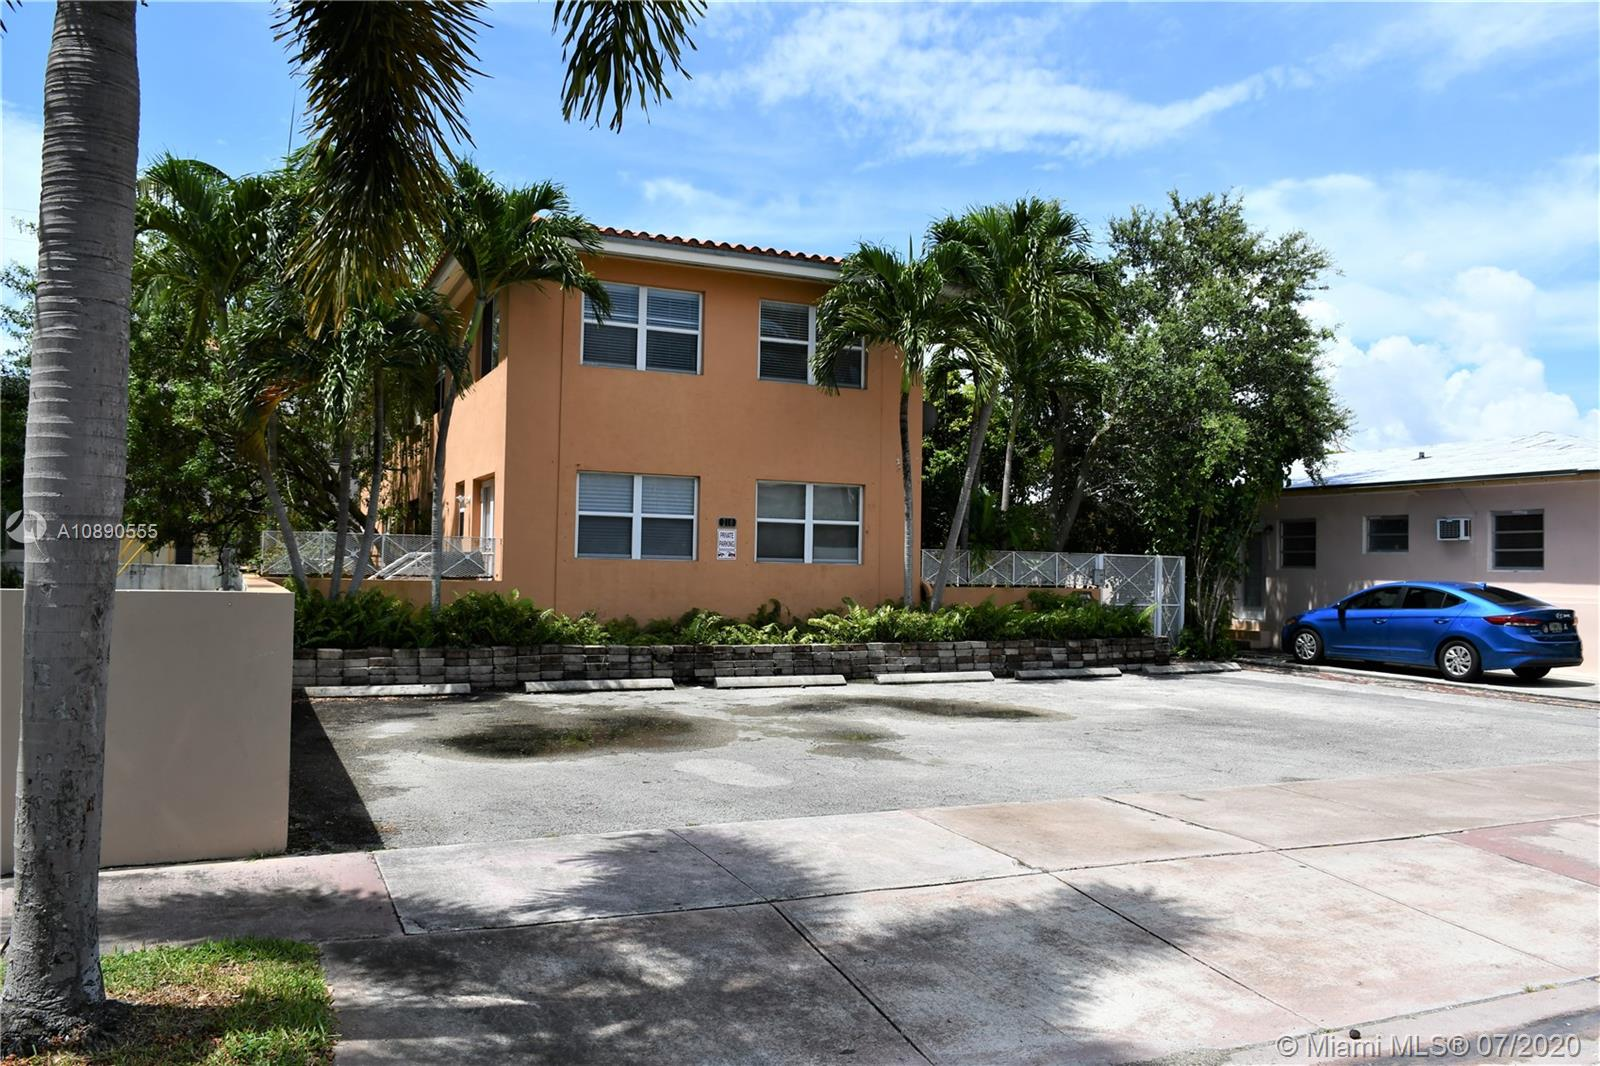 210  Mendoza Ave #6 For Sale A10890555, FL